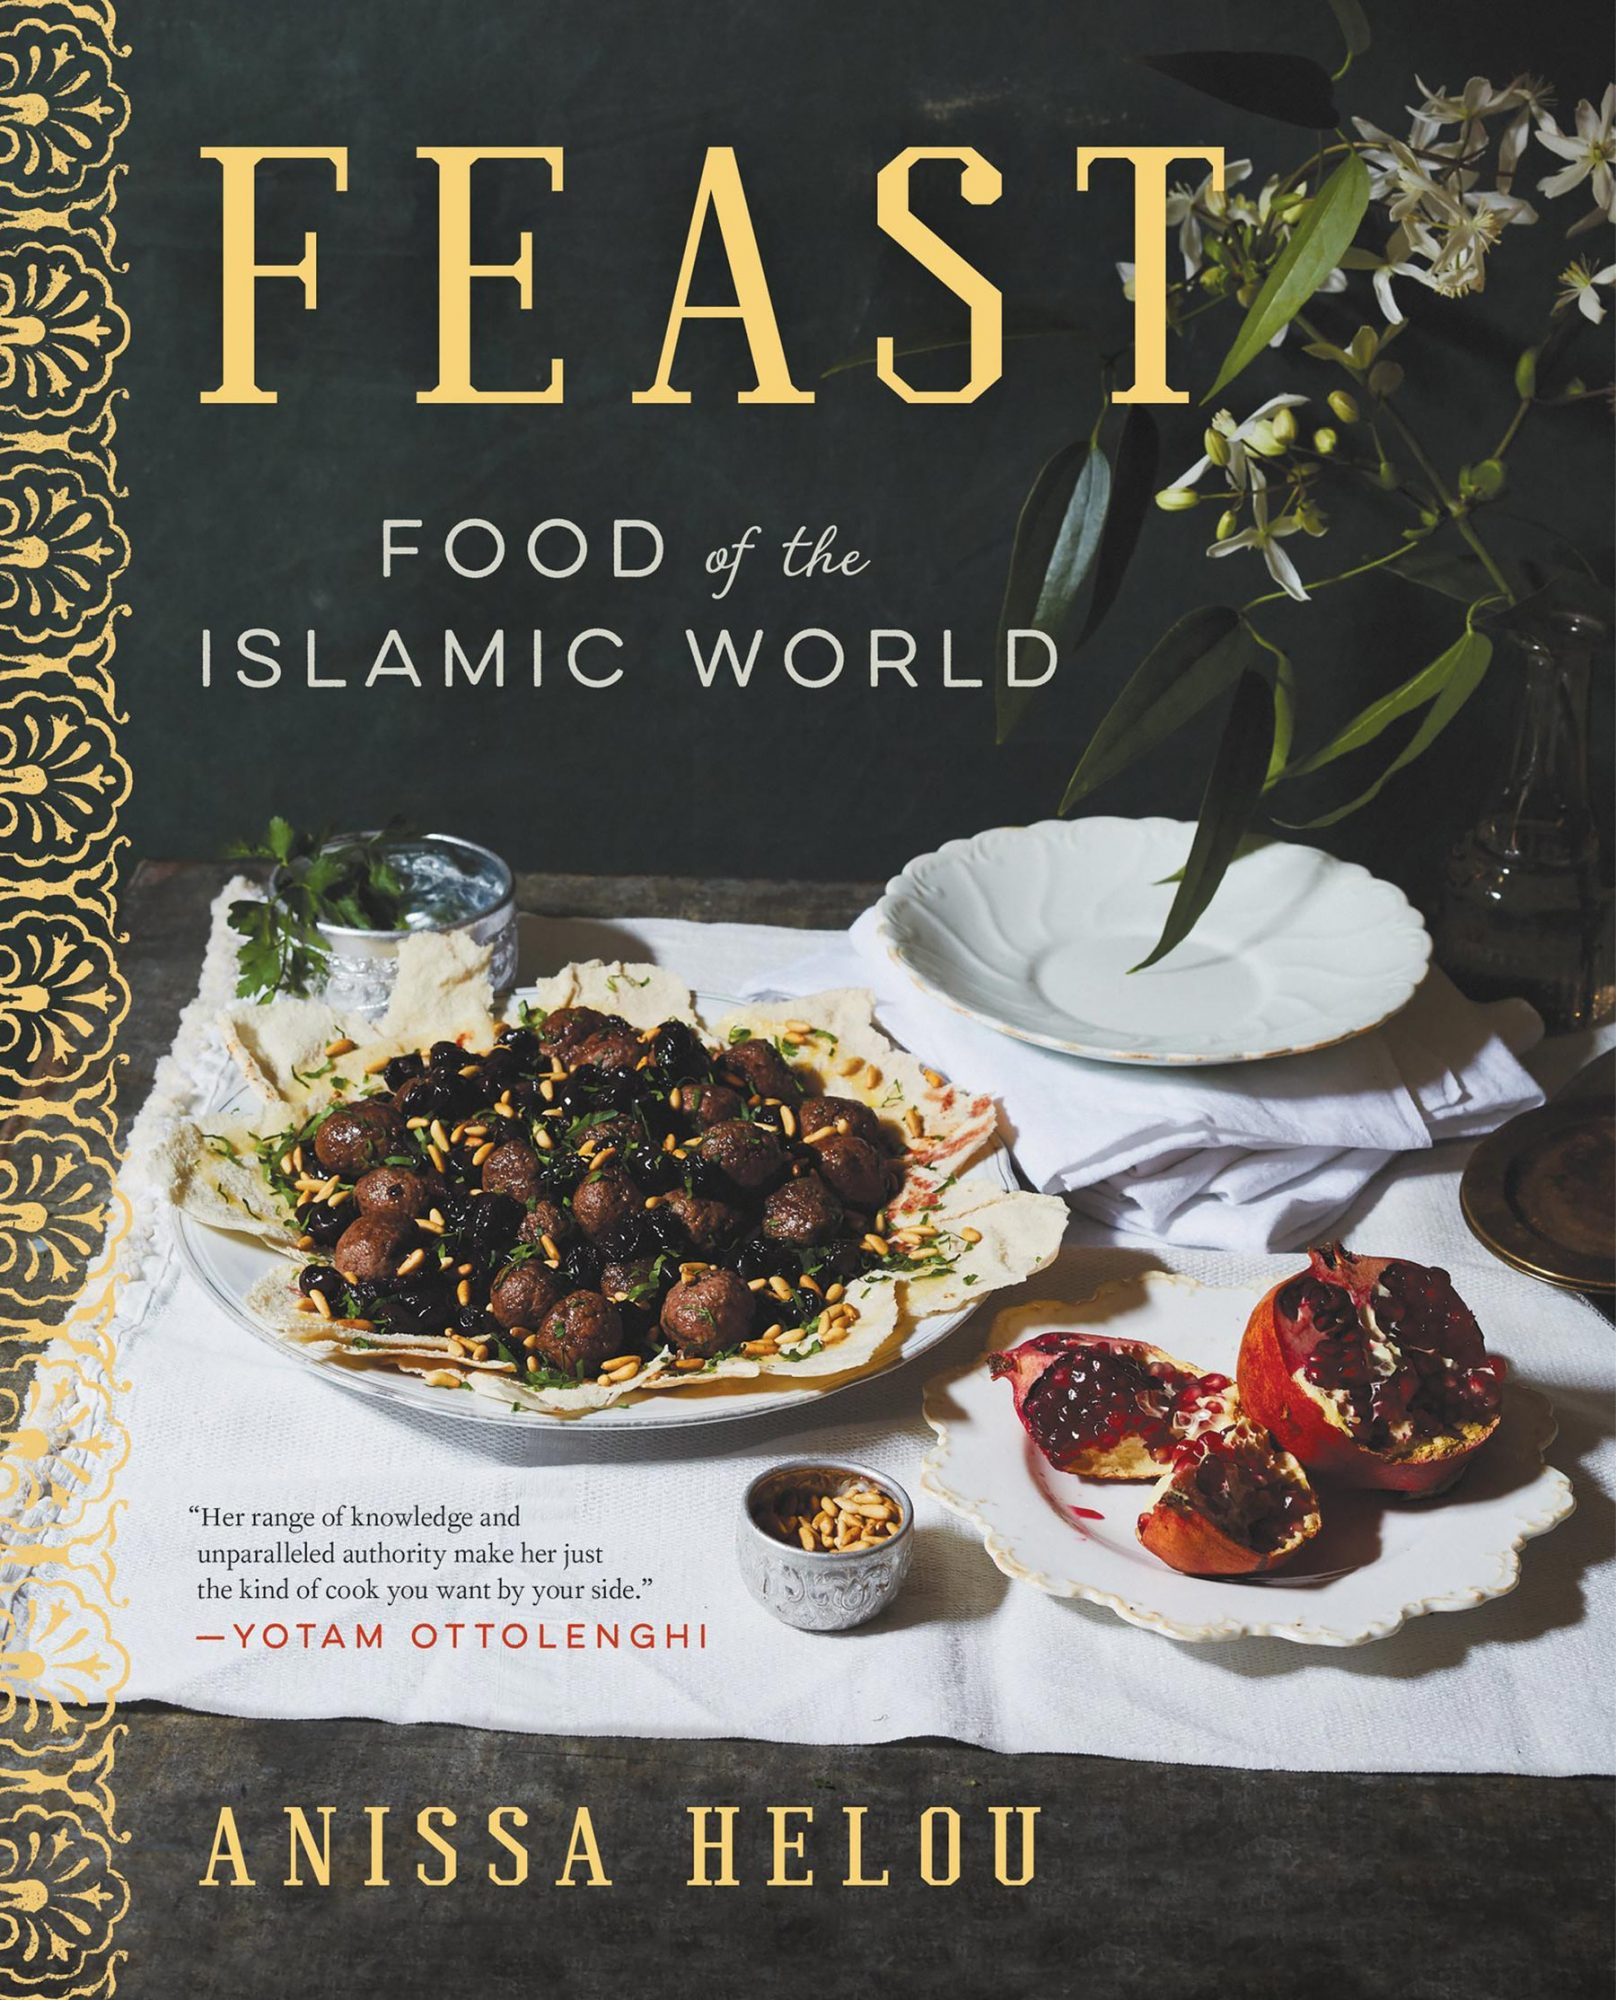 Feast: Food of the Islamic WorldBook by Anissa Helou CR: HarperCollins